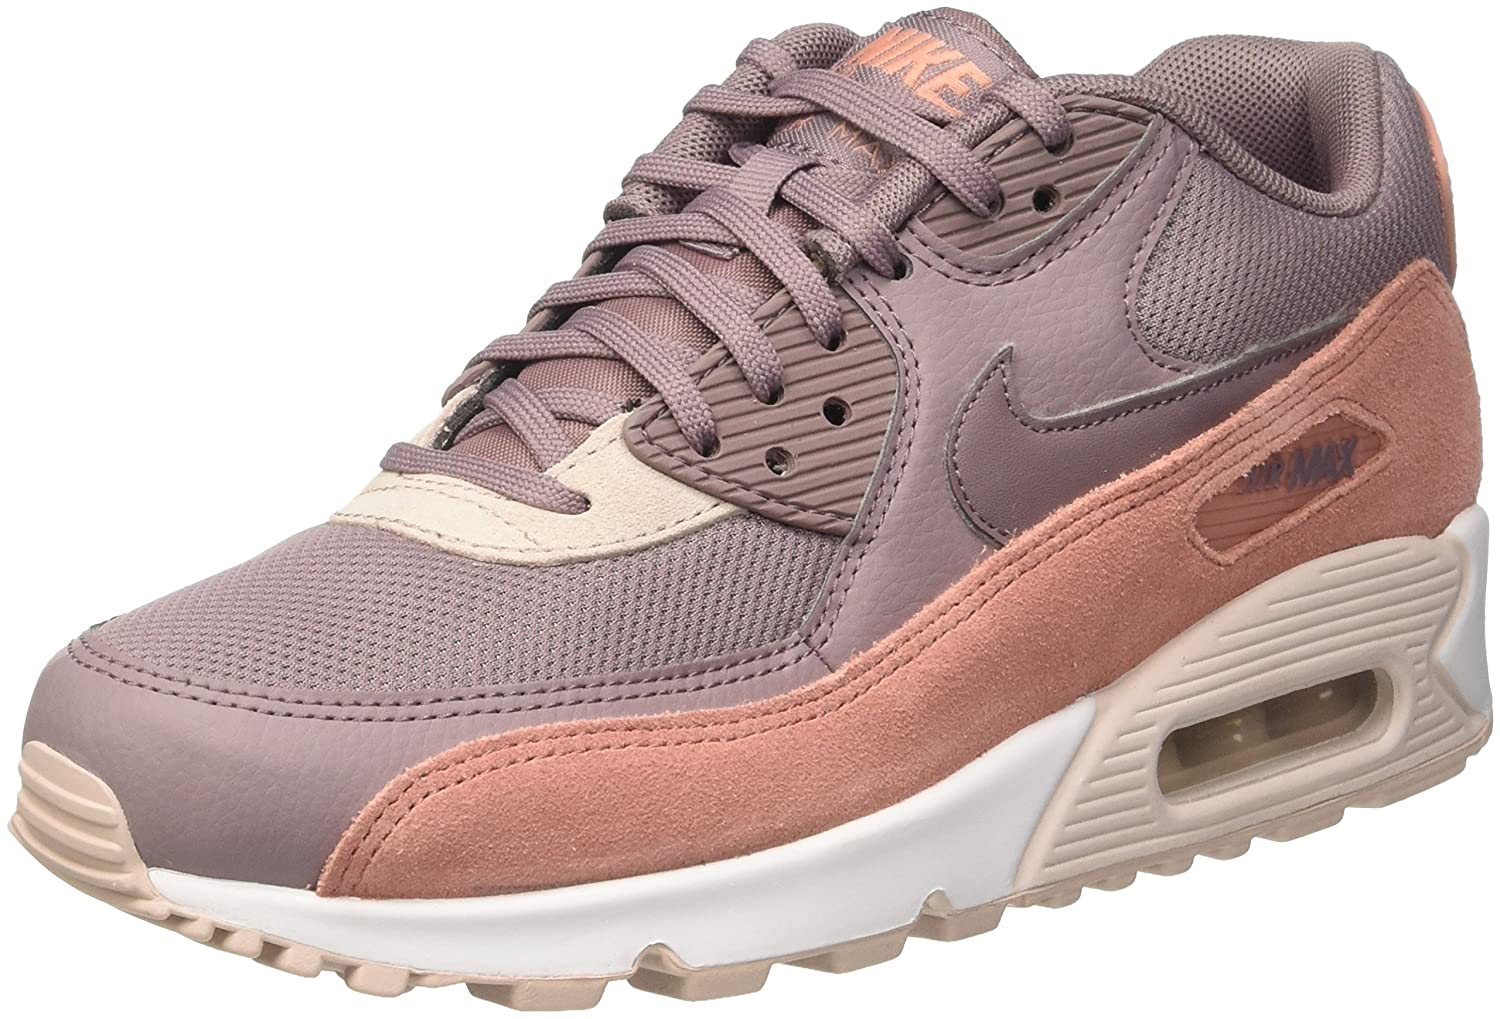 Nike Women s Air Max 90 Red 325213-611 (Size  8.5)  Amazon.in  Shoes    Handbags 2e007bdbe